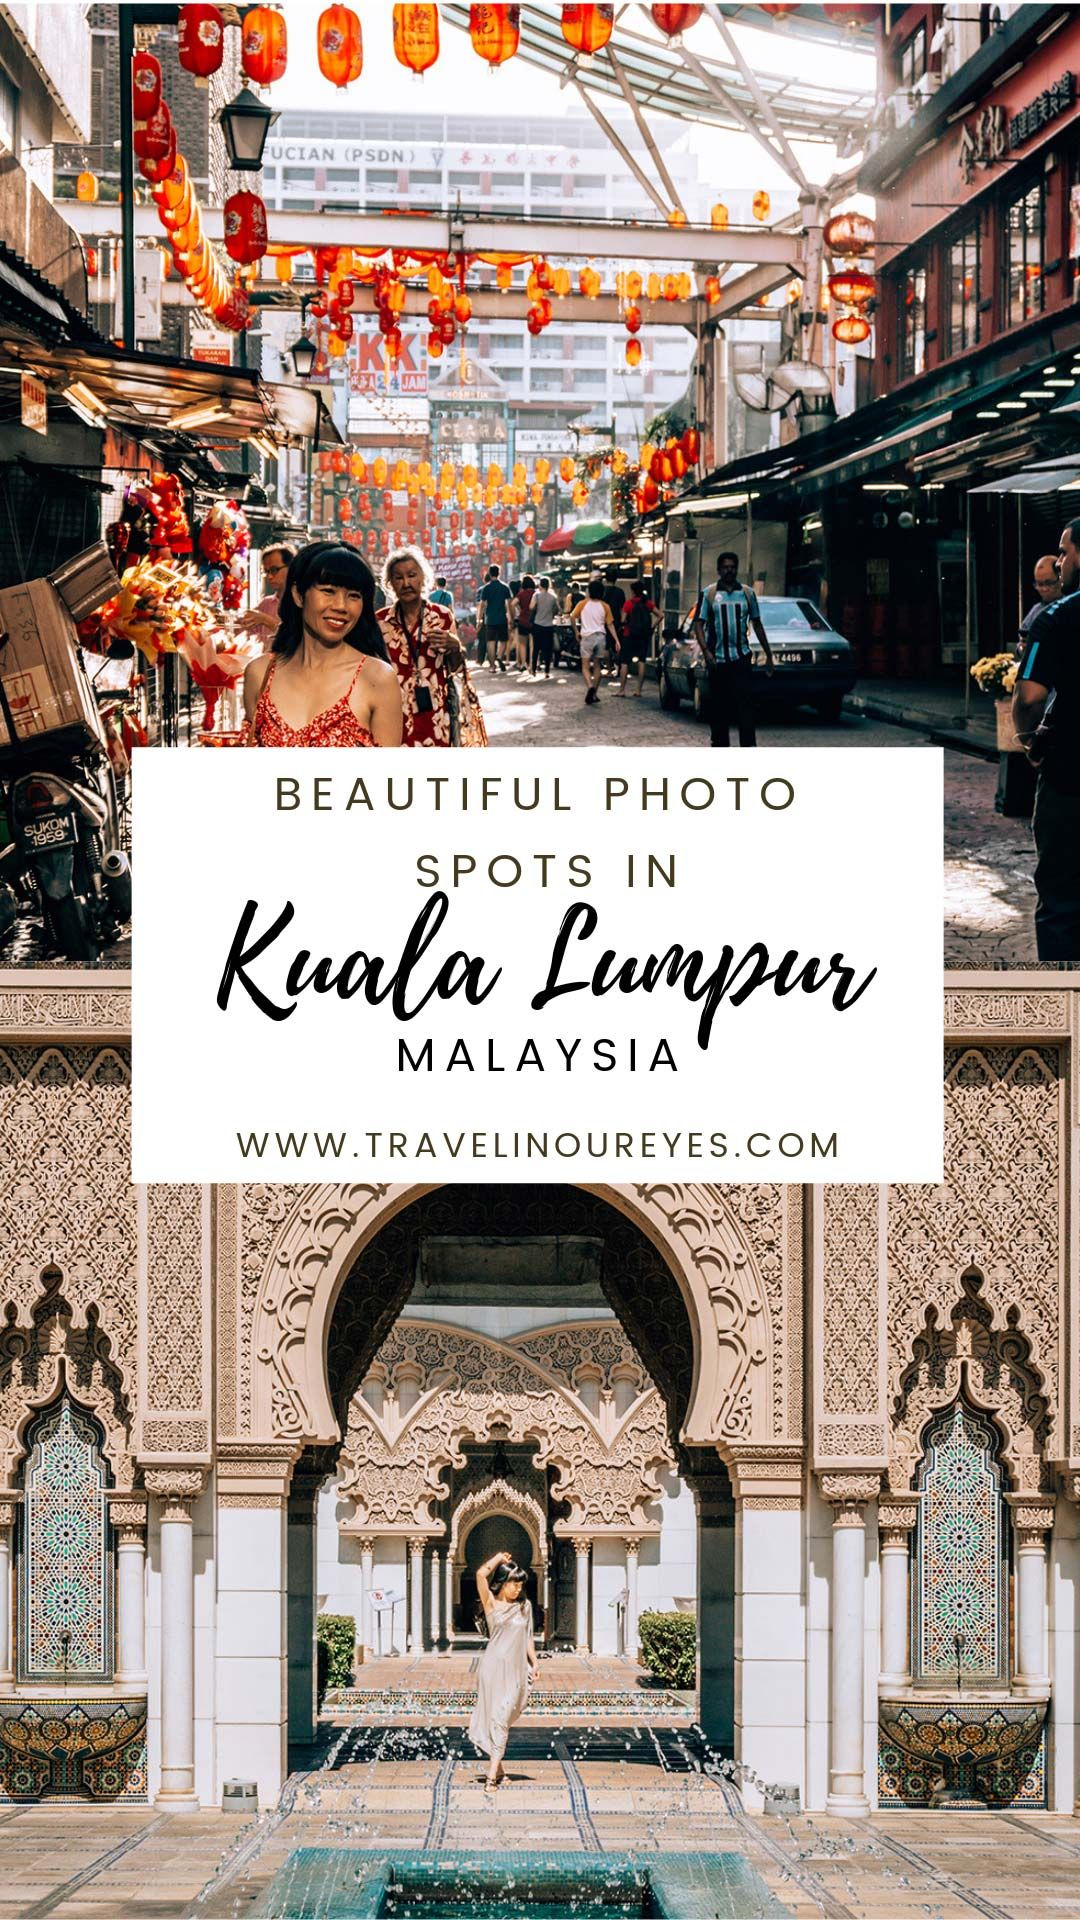 Kuala Lumpur has so much to offer and is one of the most visited cities in the world! Yet KL is not as known for photo spots as other South East Asian destinations. We hope to change that with our list of most beautiful Instagrammable spots in KL | Travel Couple Sue & Renesh | www.travelinoureyes.com  #kualalumpur #travel #malaysia #traveldestinations #travelphotos